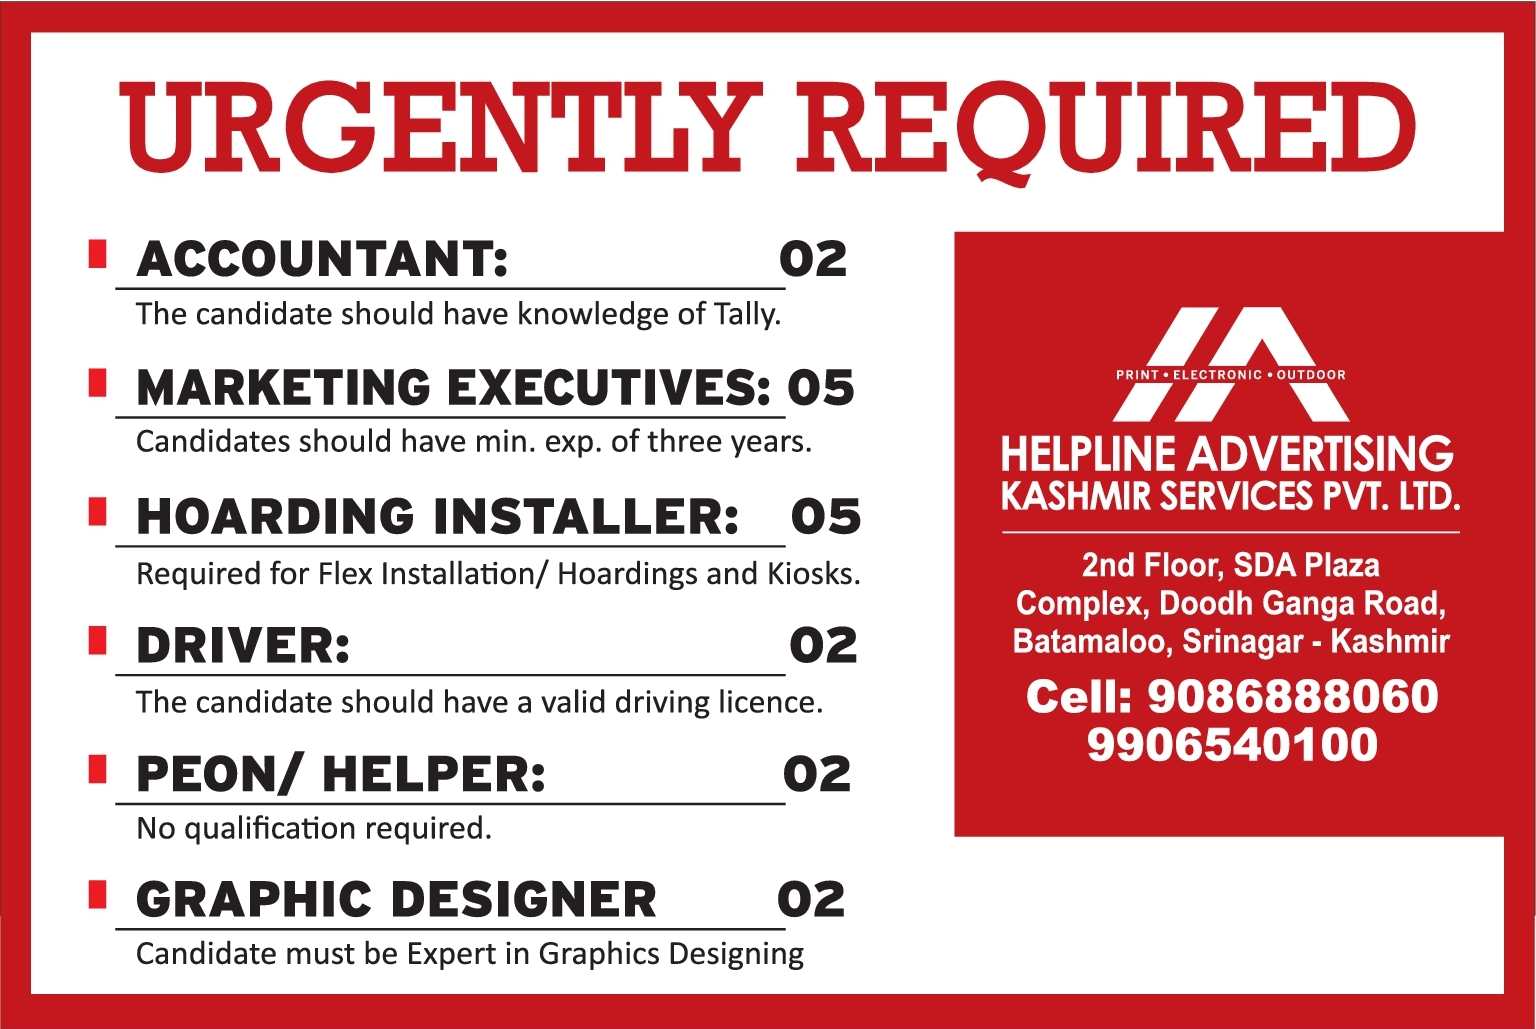 Helpline advertising kashmir services pvt. Ltd.